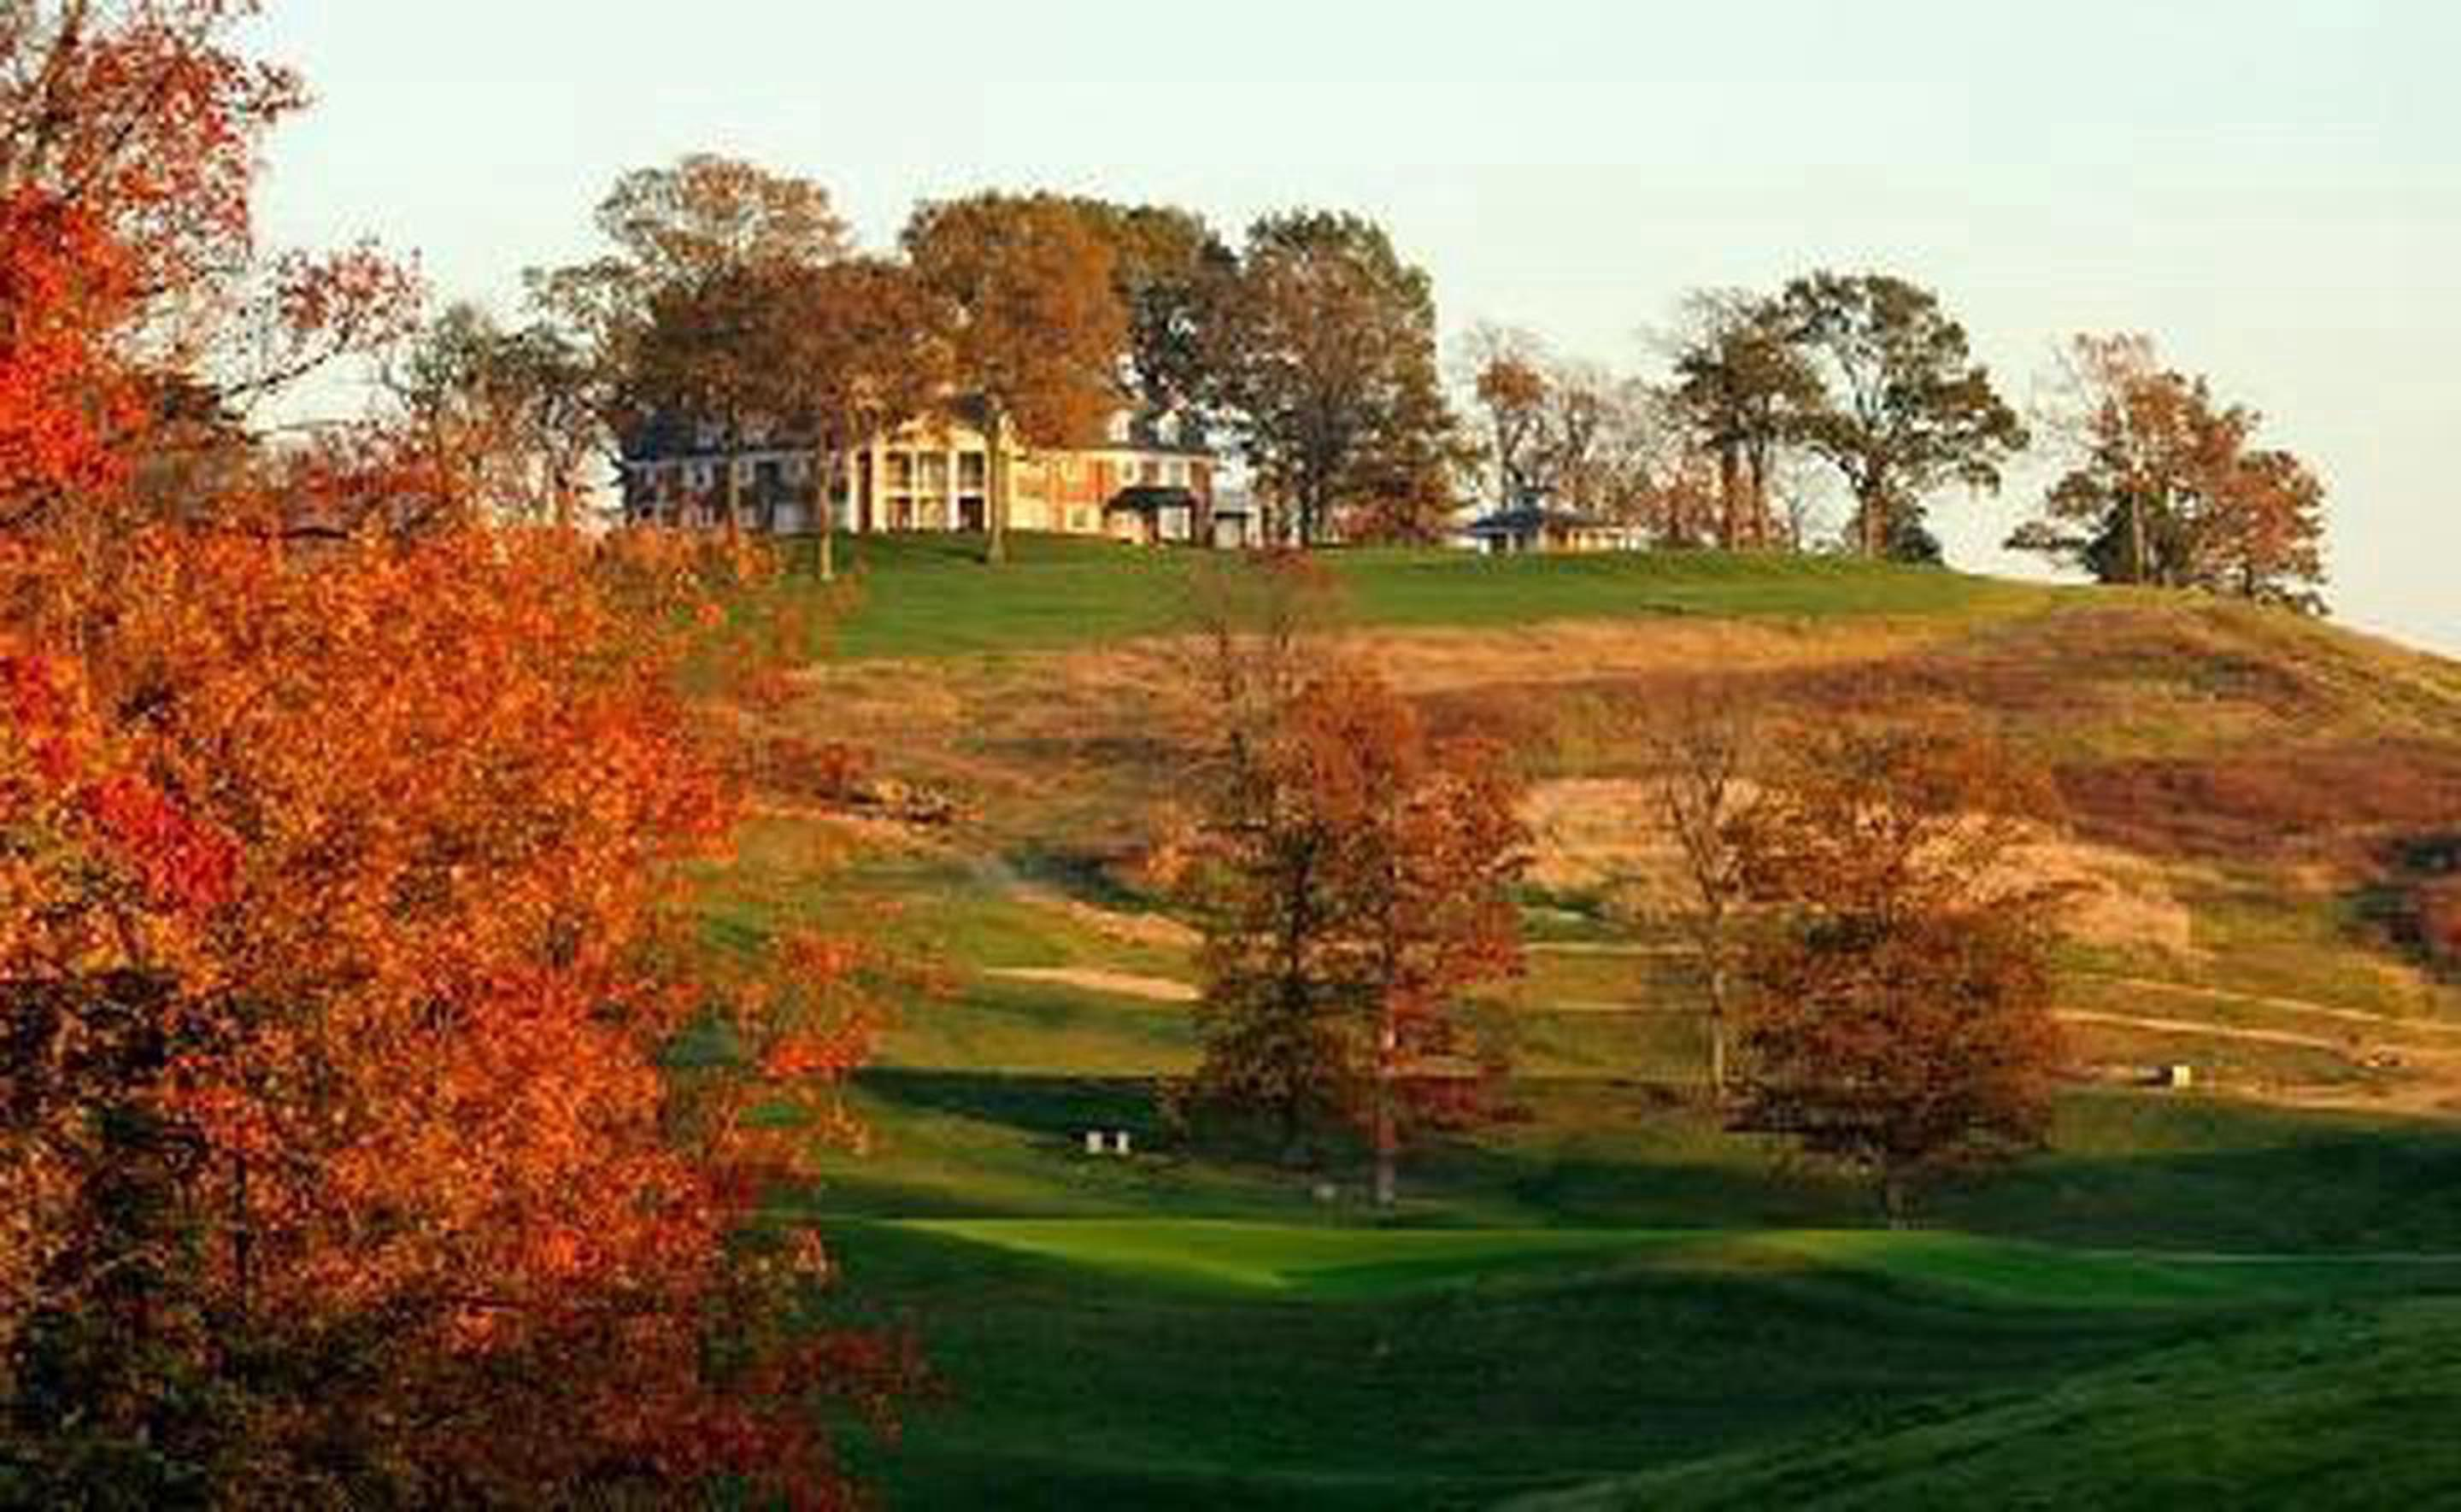 World Class GolfOne of the most popular features at this Historic Hotels of America hotel is the 18-hole championship Donald Ross Golf Course.